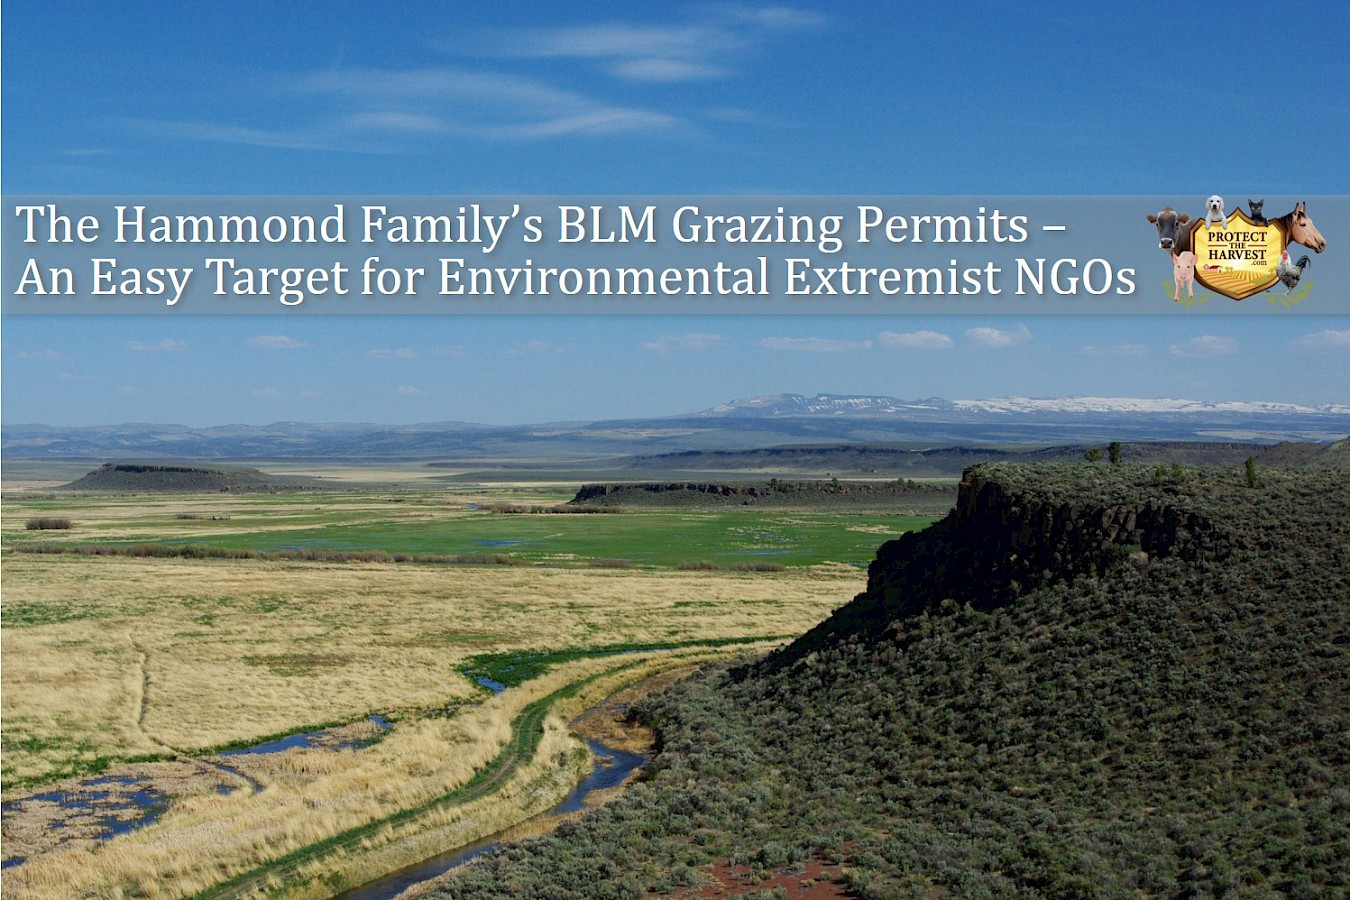 The Hammond Family's BLM Grazing Permits-An Easy Target for Environmental Extremist NGOs